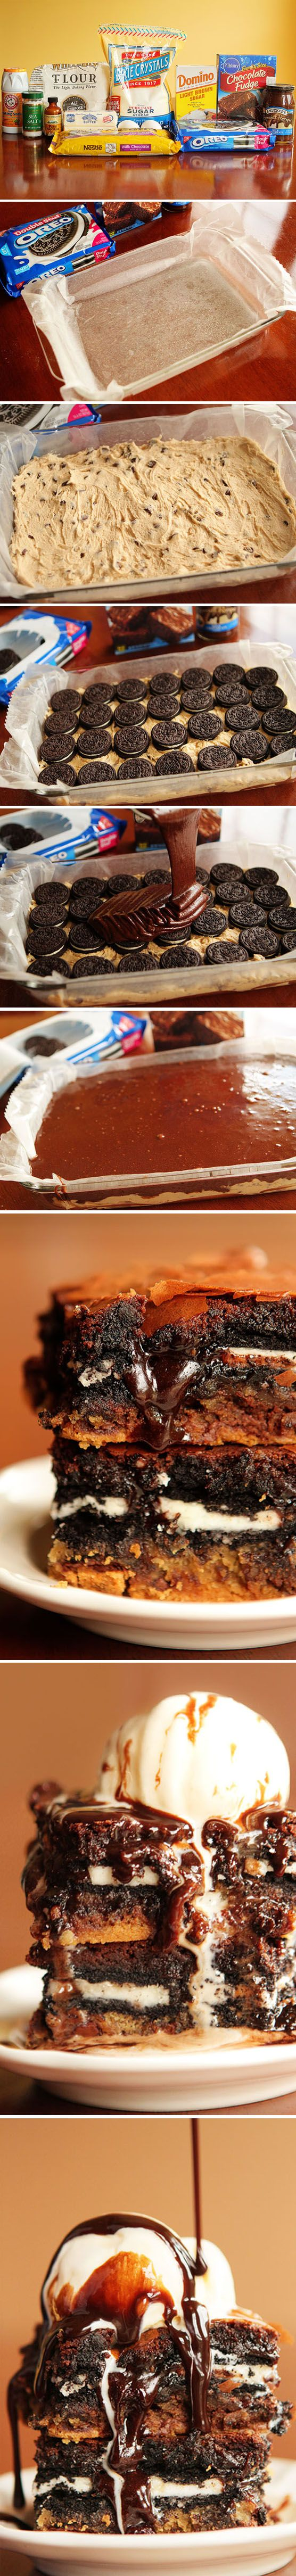 Barras de galleta, brownie de chocolate y Oreos